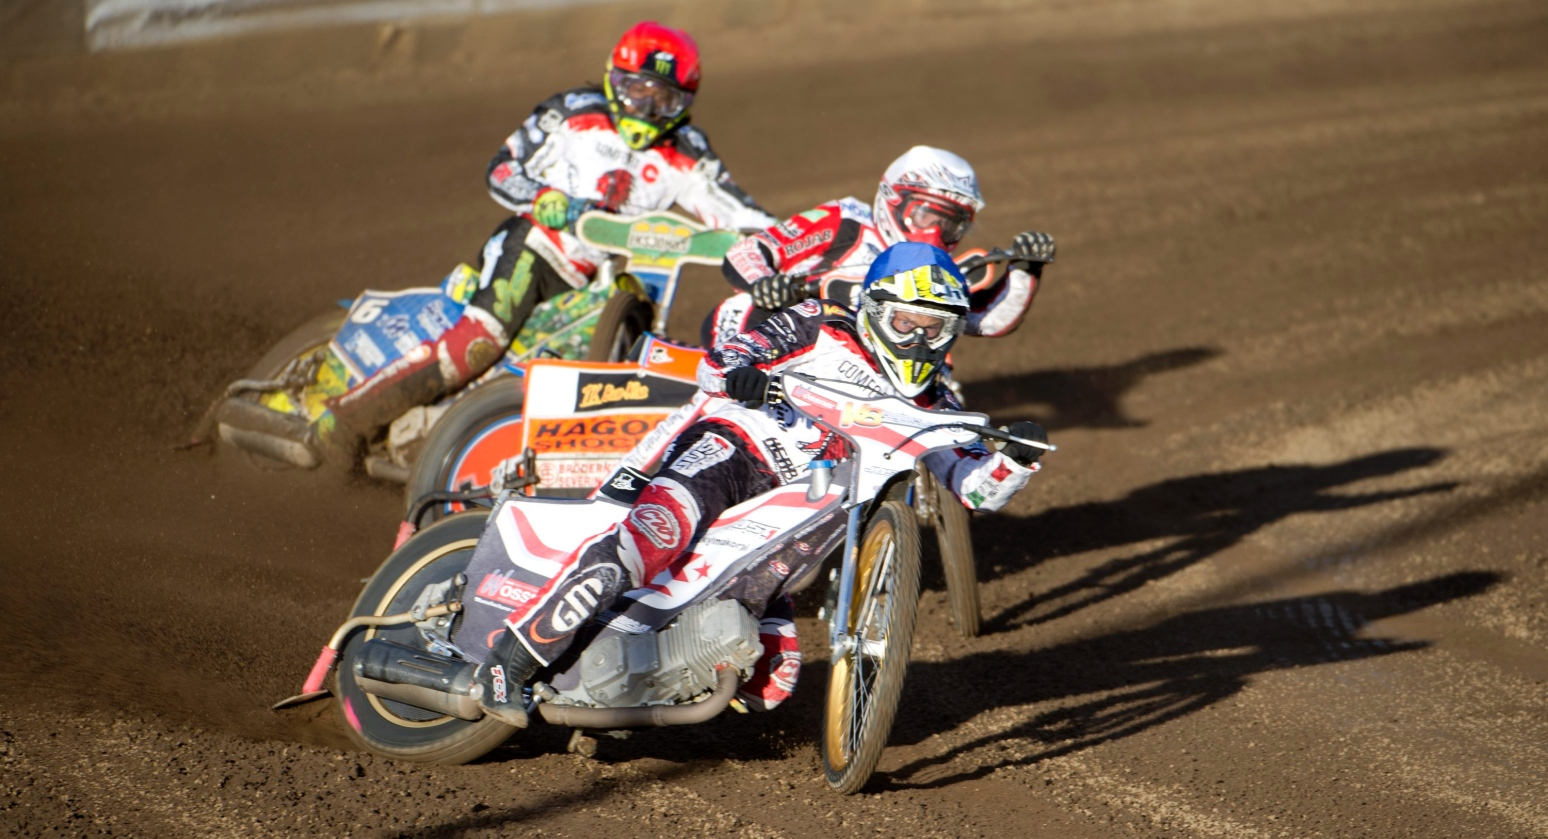 Indianerna tog sista chansen piraterna aker ur elitserien